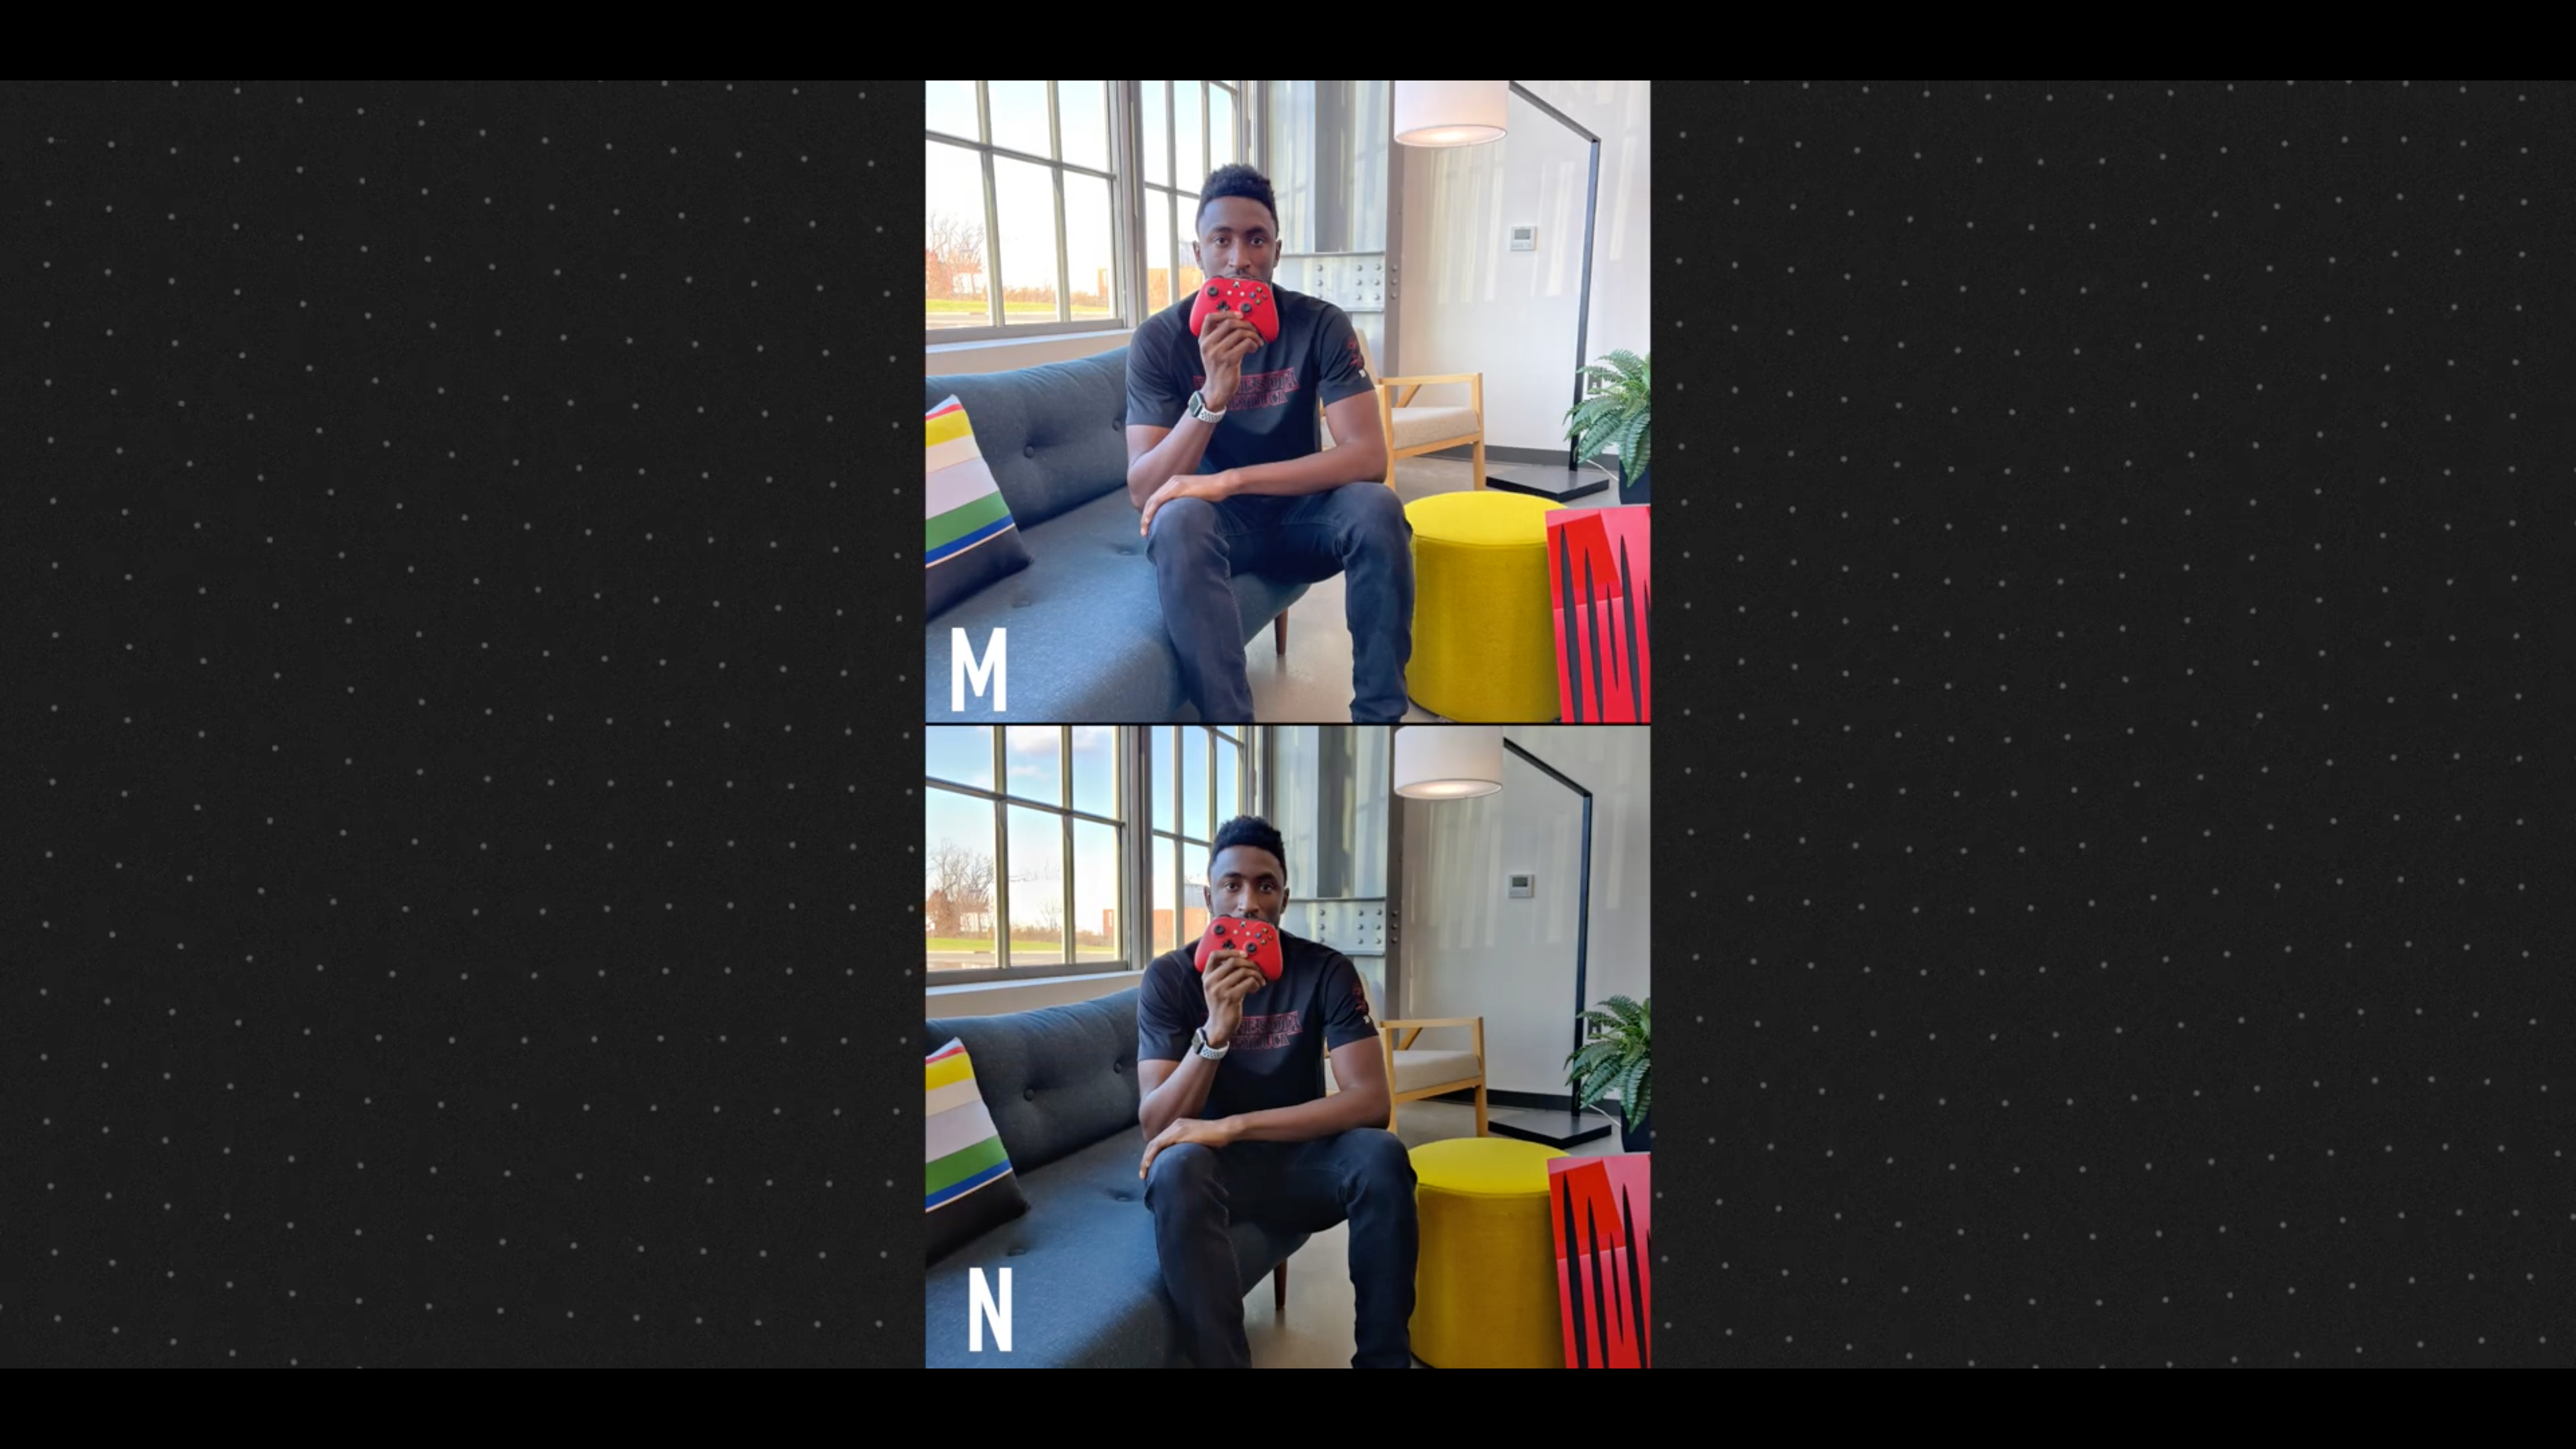 iPhone 12 Pro Max loses to OnePlus 8T in MKBHD's blind smartphone camera test - 9to5Mac